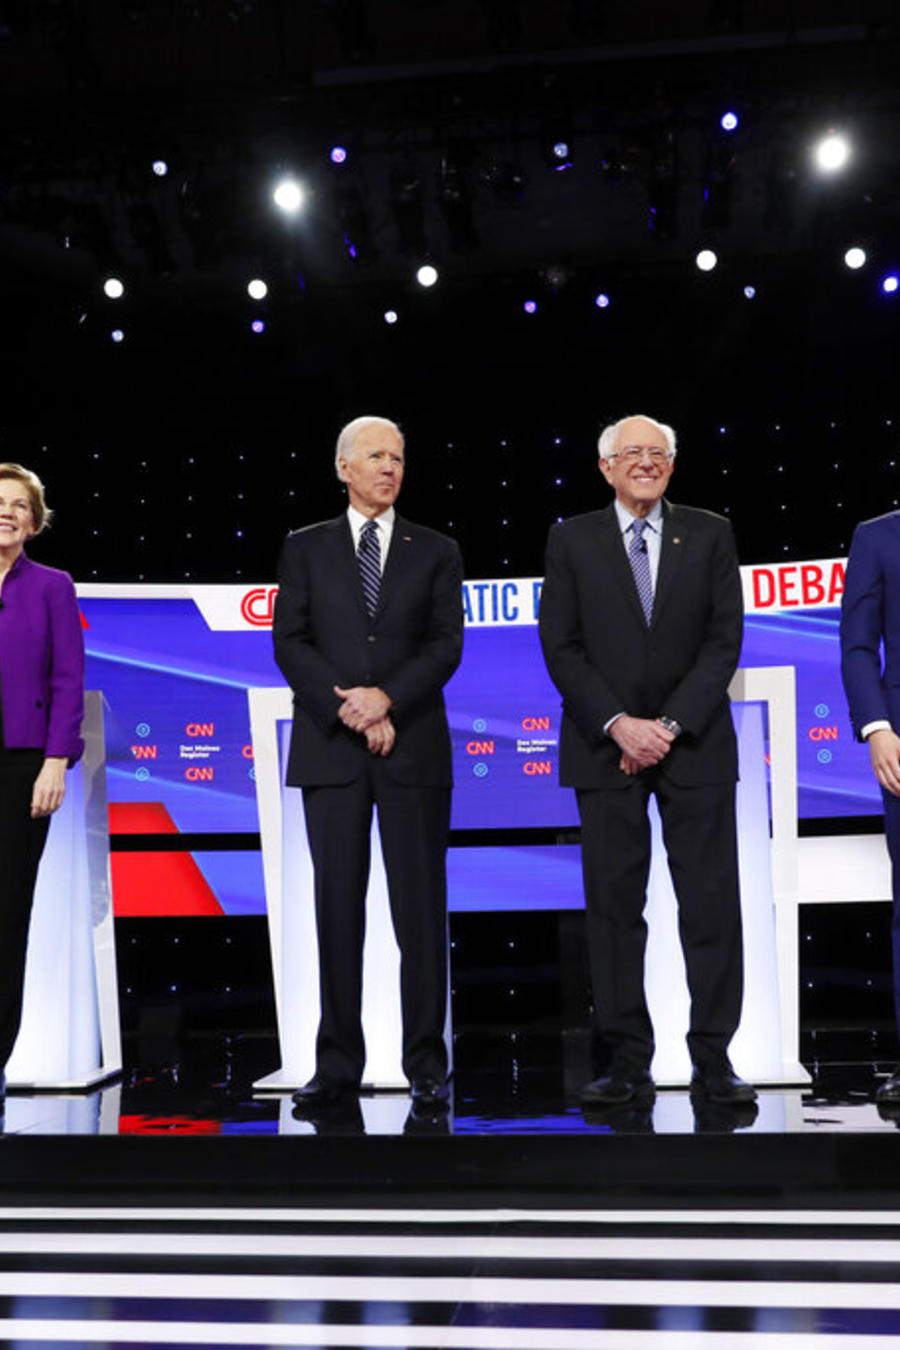 Amy Klobuchar,Pete Buttigieg,Bernie Sanders,Joe Biden,Elizabeth Warren,Tom Steyer